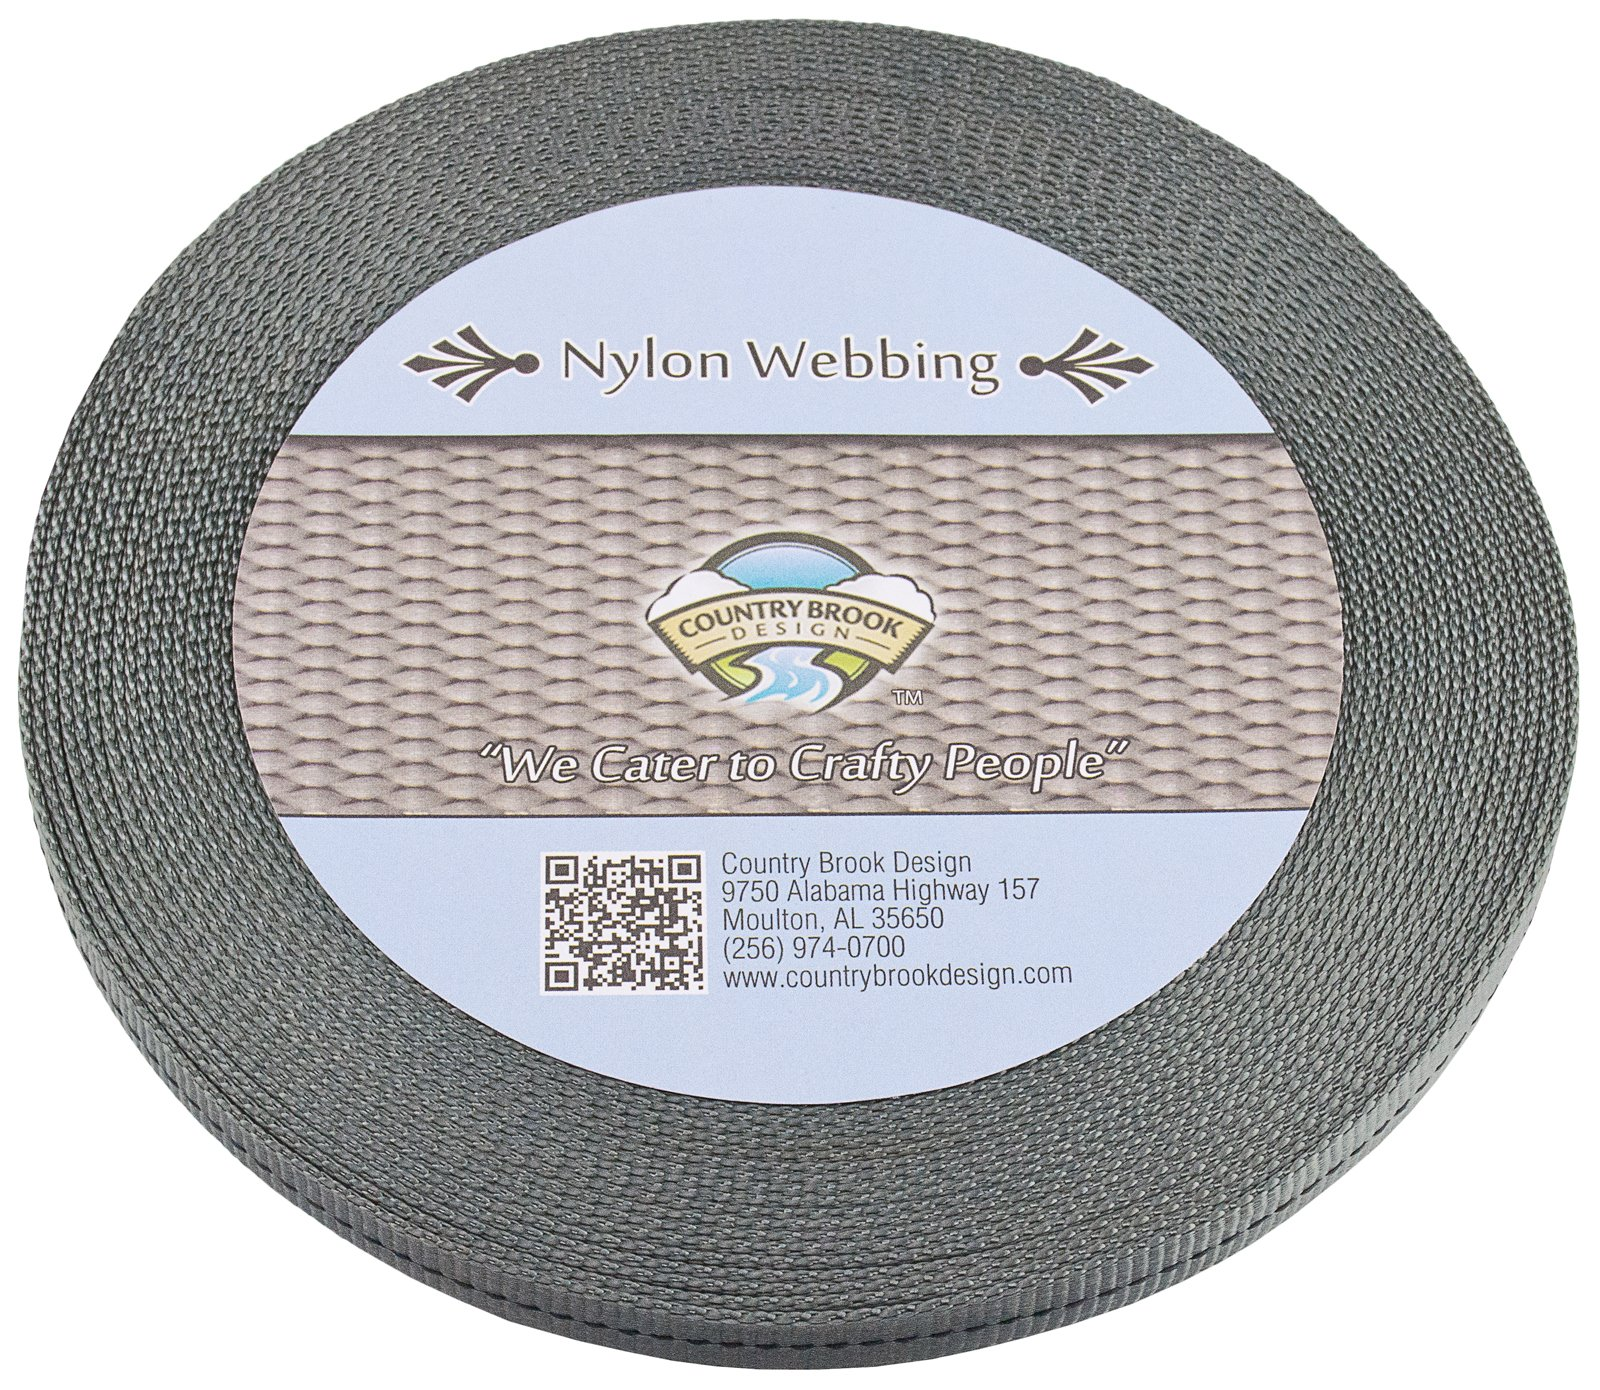 Country Brook Design - 1/2 Inch Foliage Green Military Spec Tubular Nylon Webbing, 50 Yards by Country Brook Design